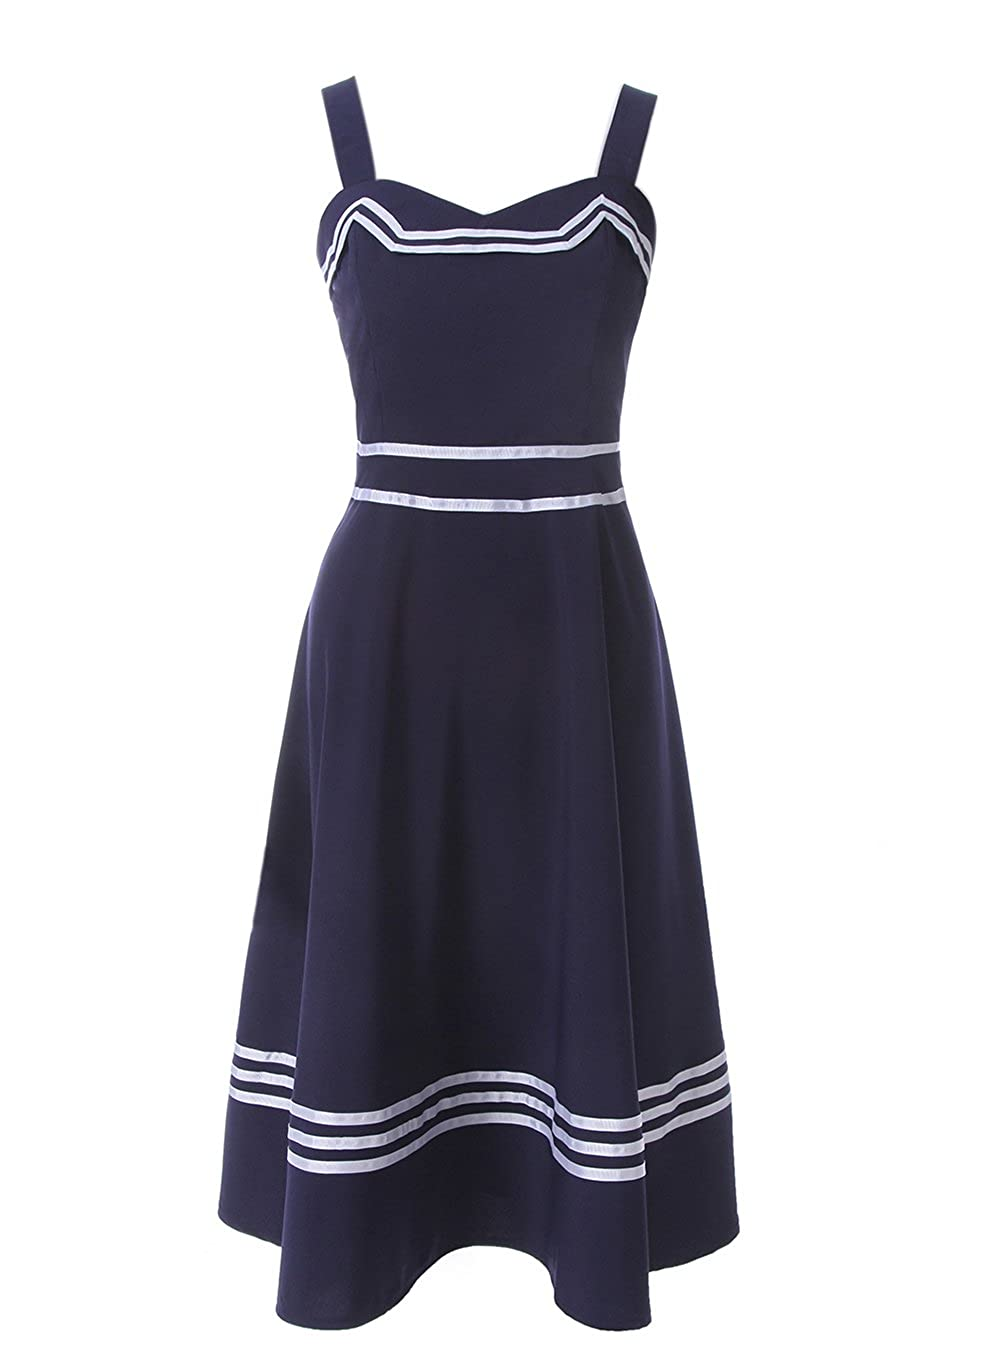 Sailor Dresses, Nautical Theme Dress, WW2 Dresses ROLECOS Womens Sailor Dress 1950s Rockabilly Vestido Cocktail Party Dresses Navy Blue $26.99 AT vintagedancer.com